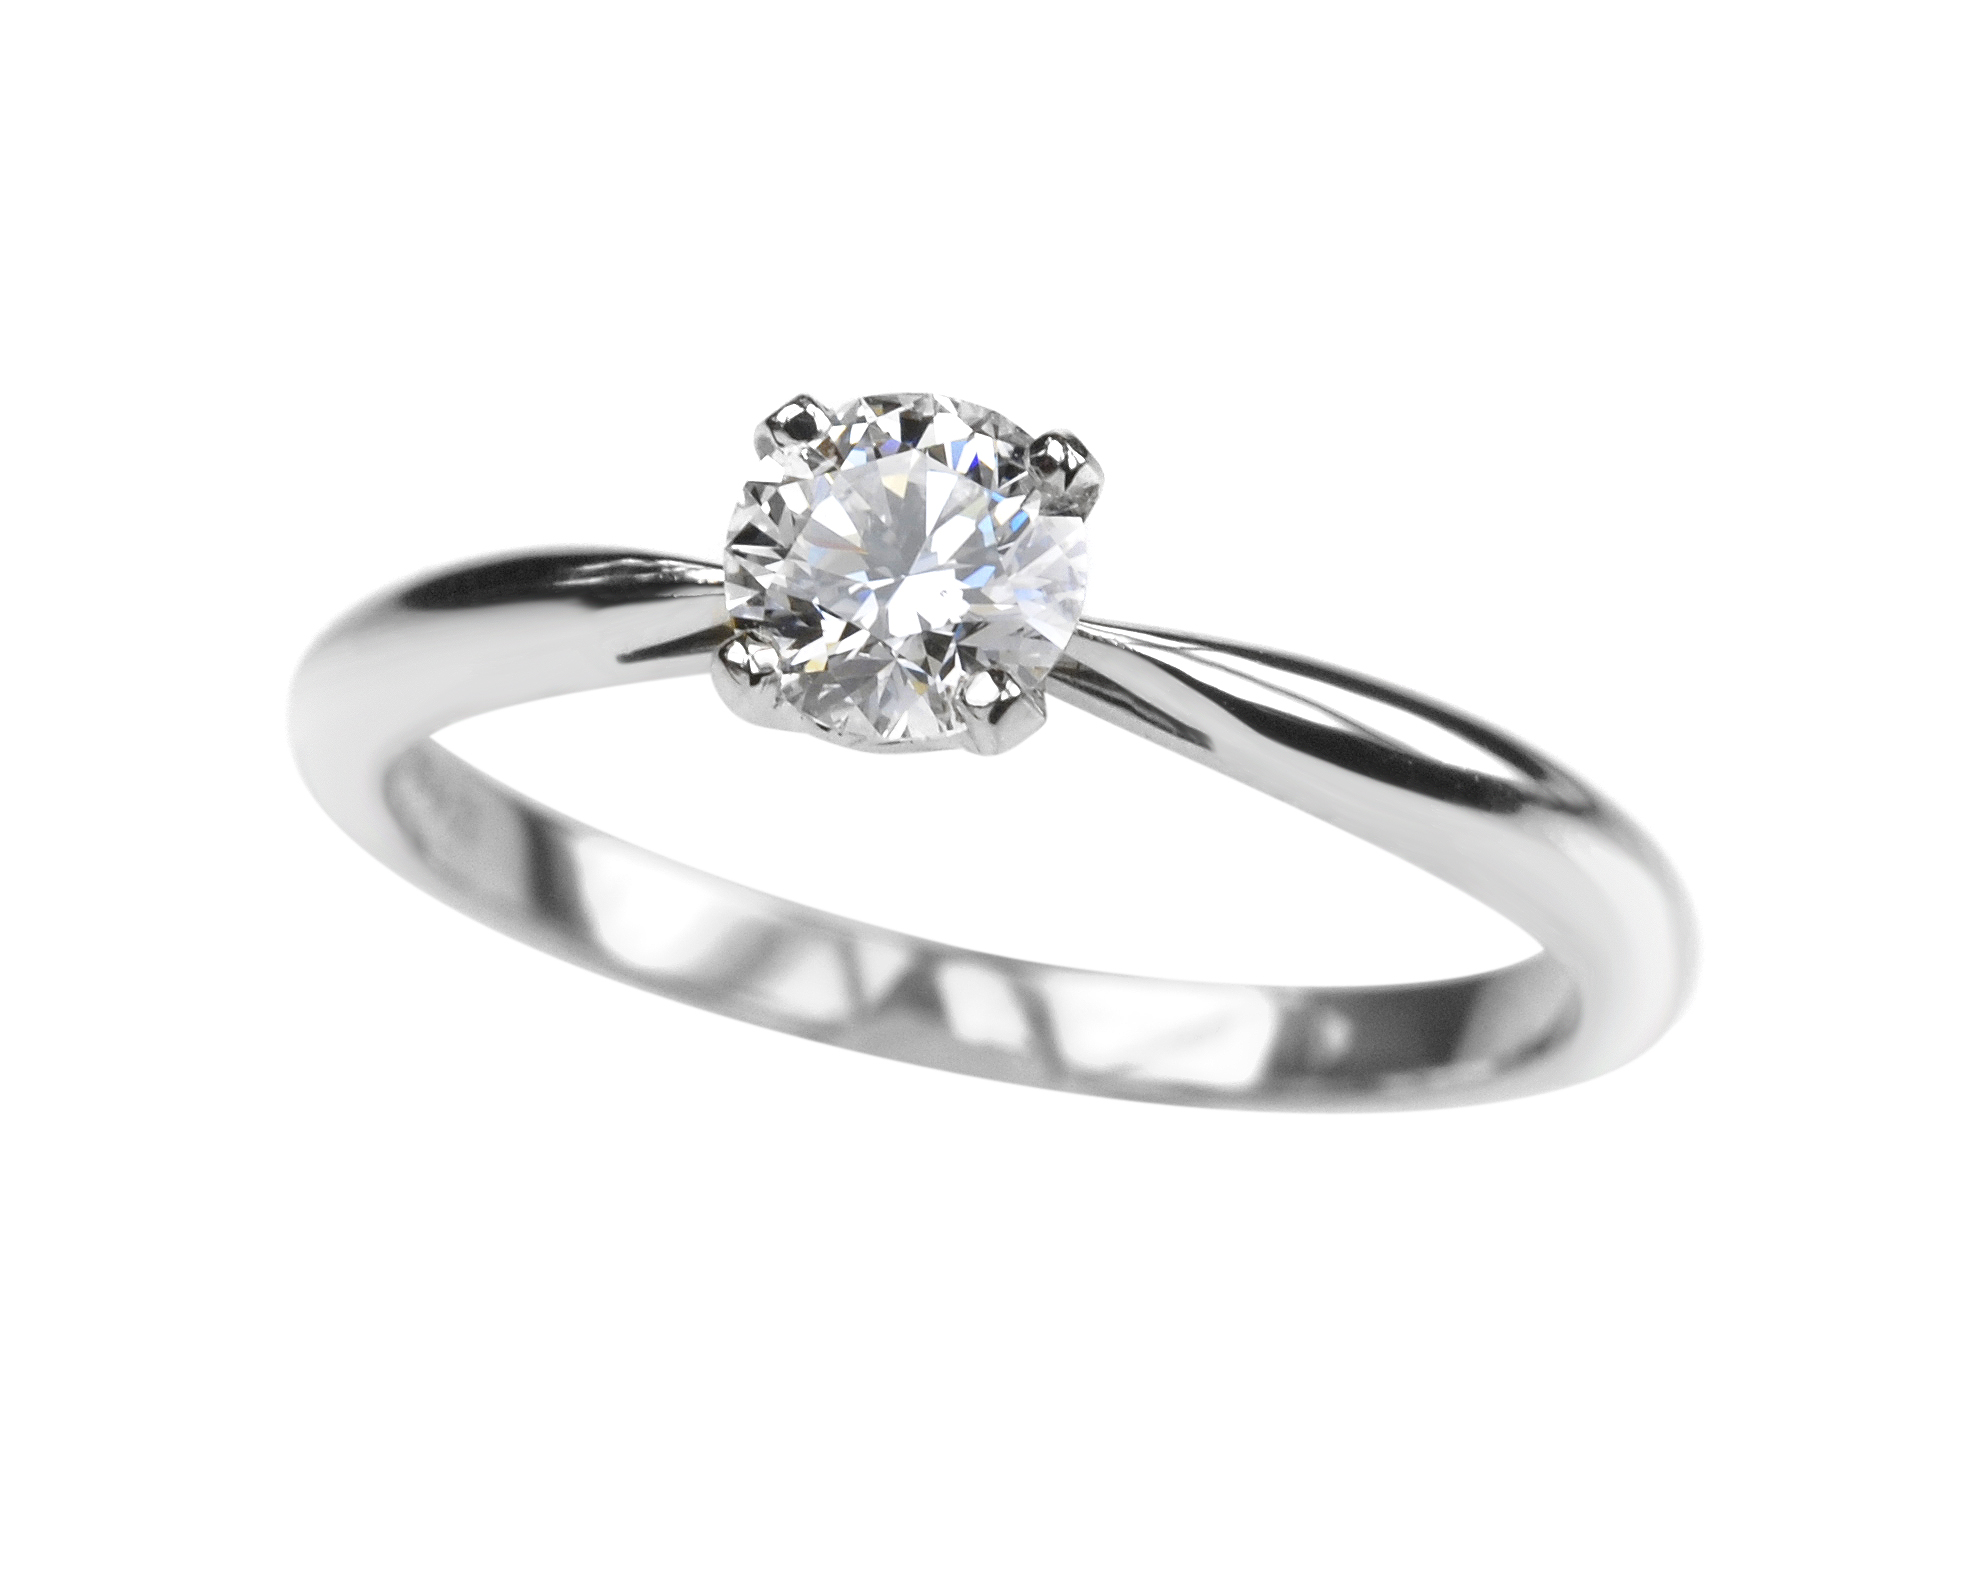 white spence engagement stone single round product diamonds rings category dimond diamond gold